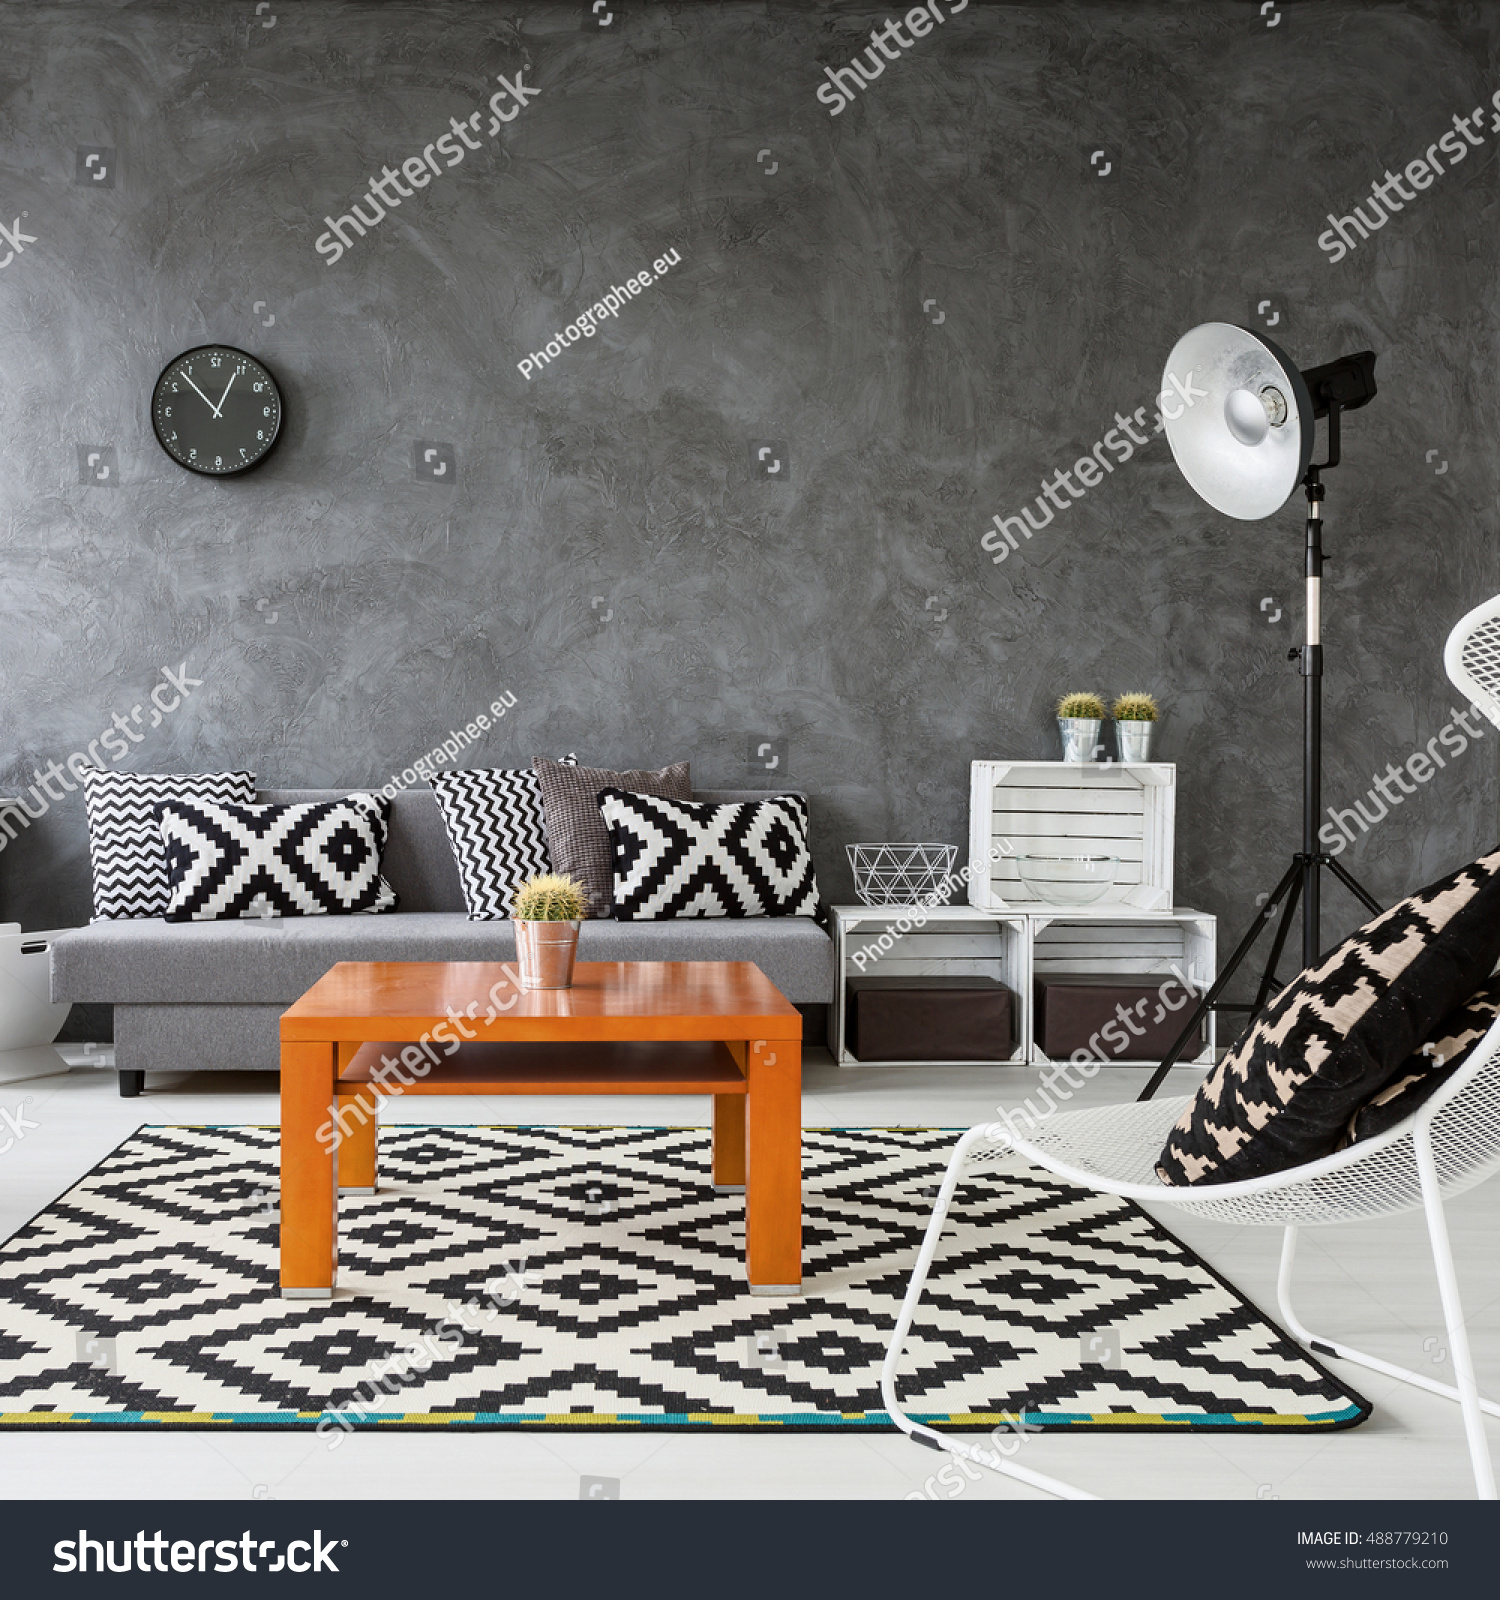 Living Room With Grey Walls And White Wooden Parquet Black Decorations Orange